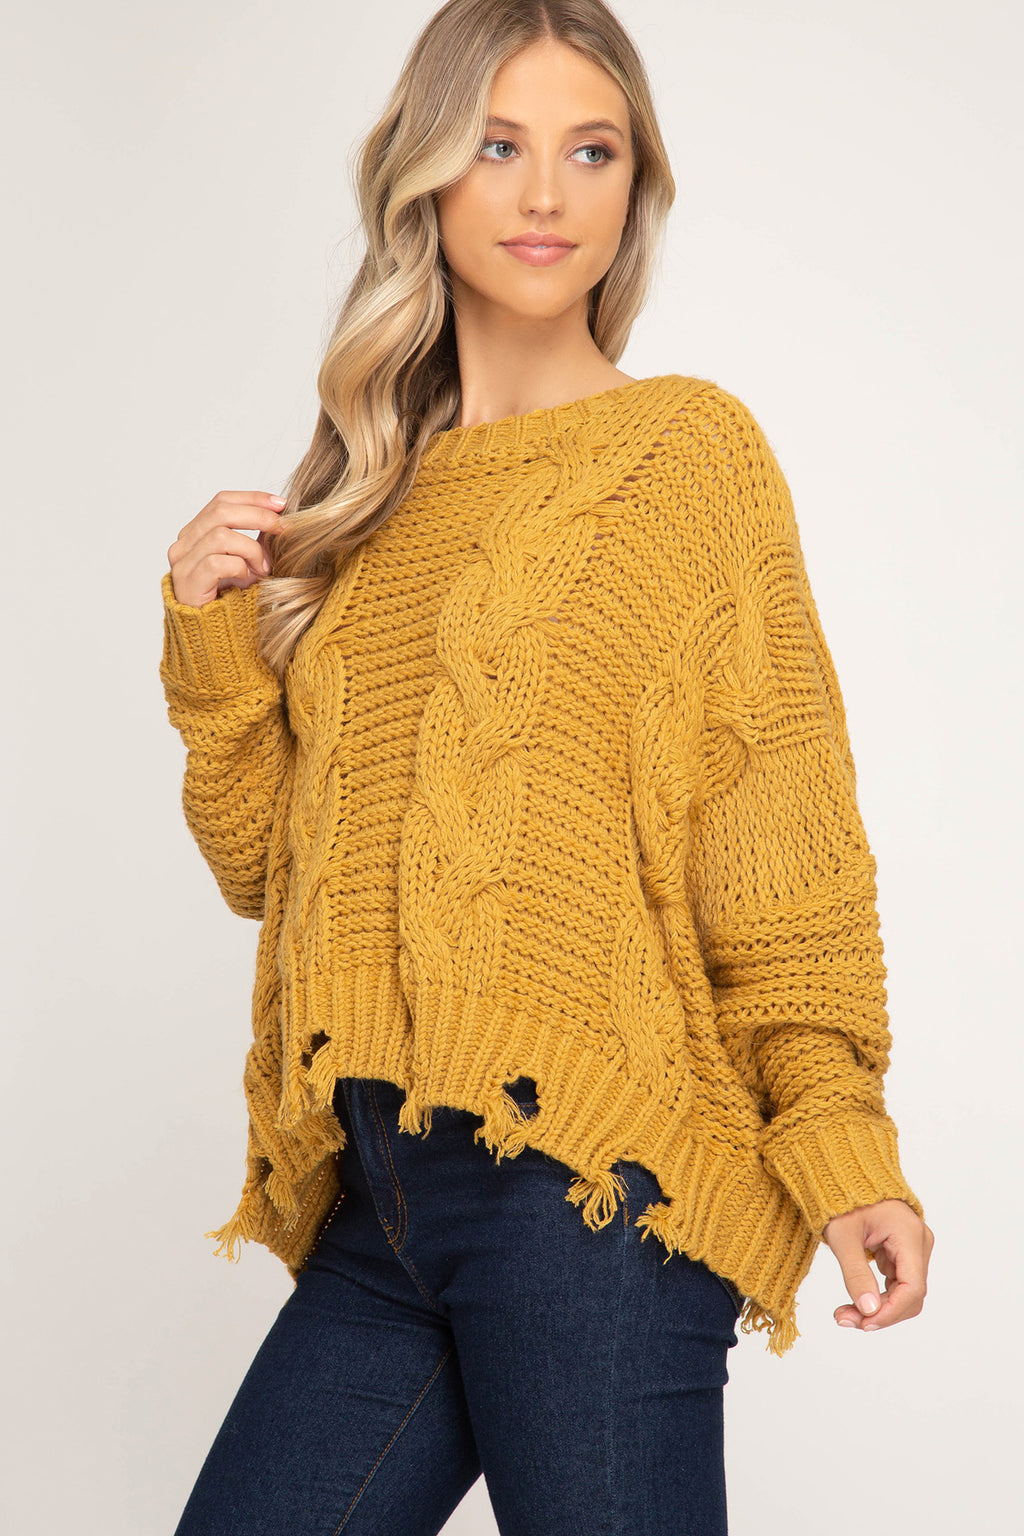 Cable Knit Sweater - Mustard